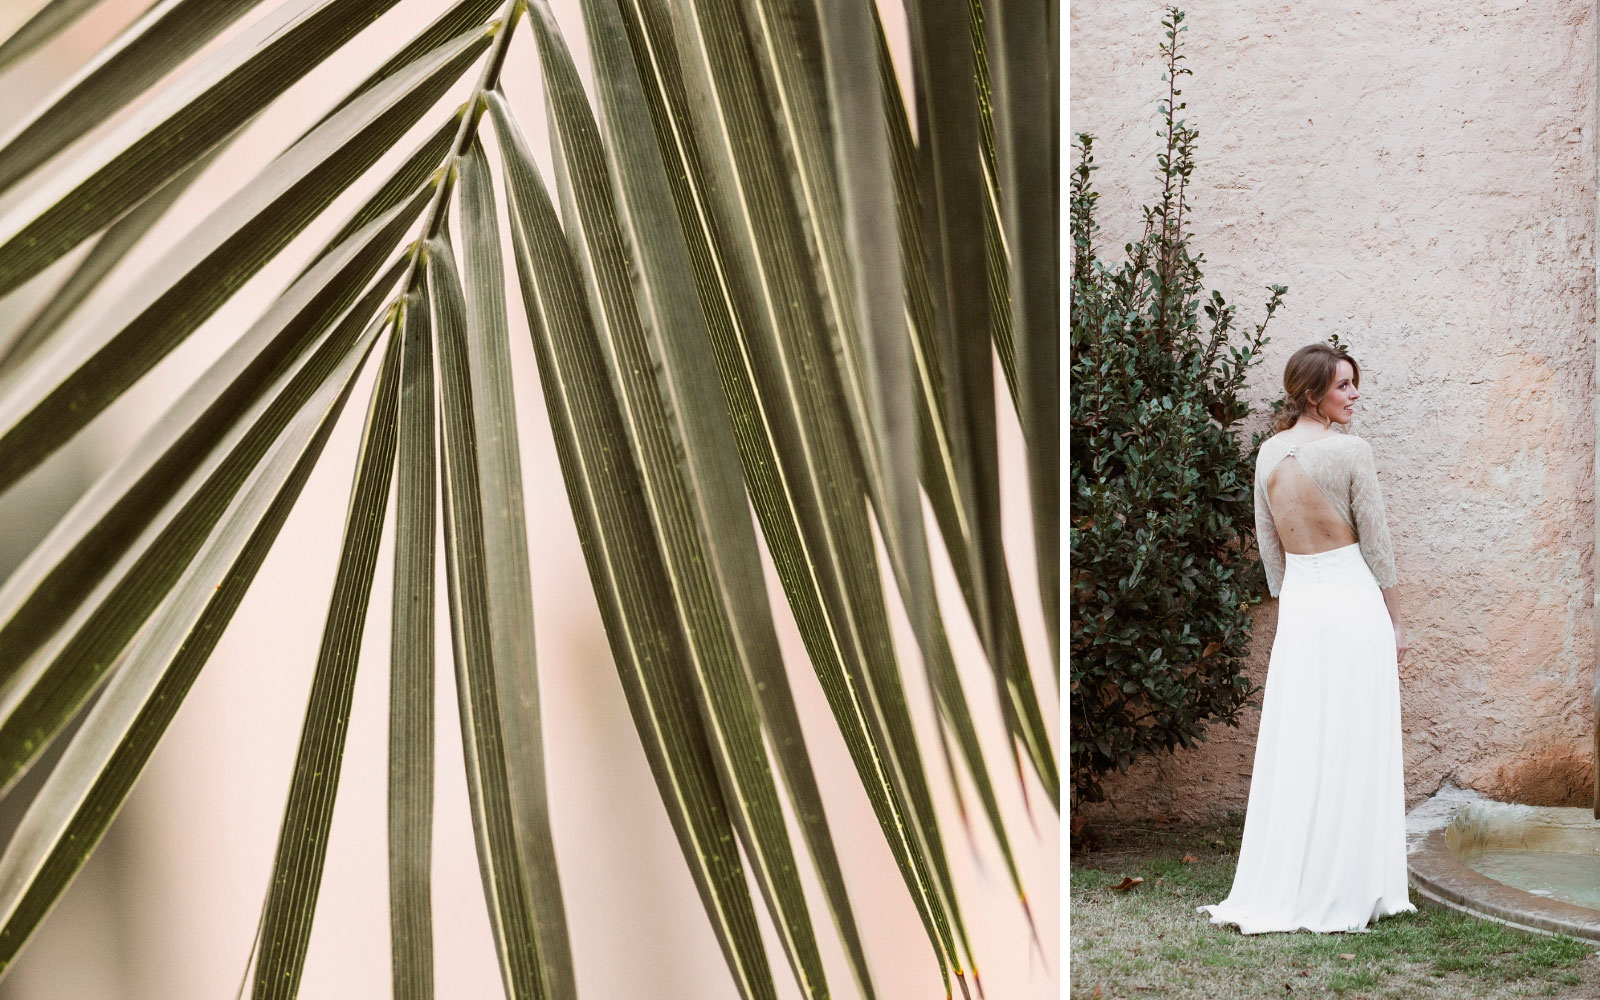 Wedding photographer Barcelona | Natalia Wisniewska